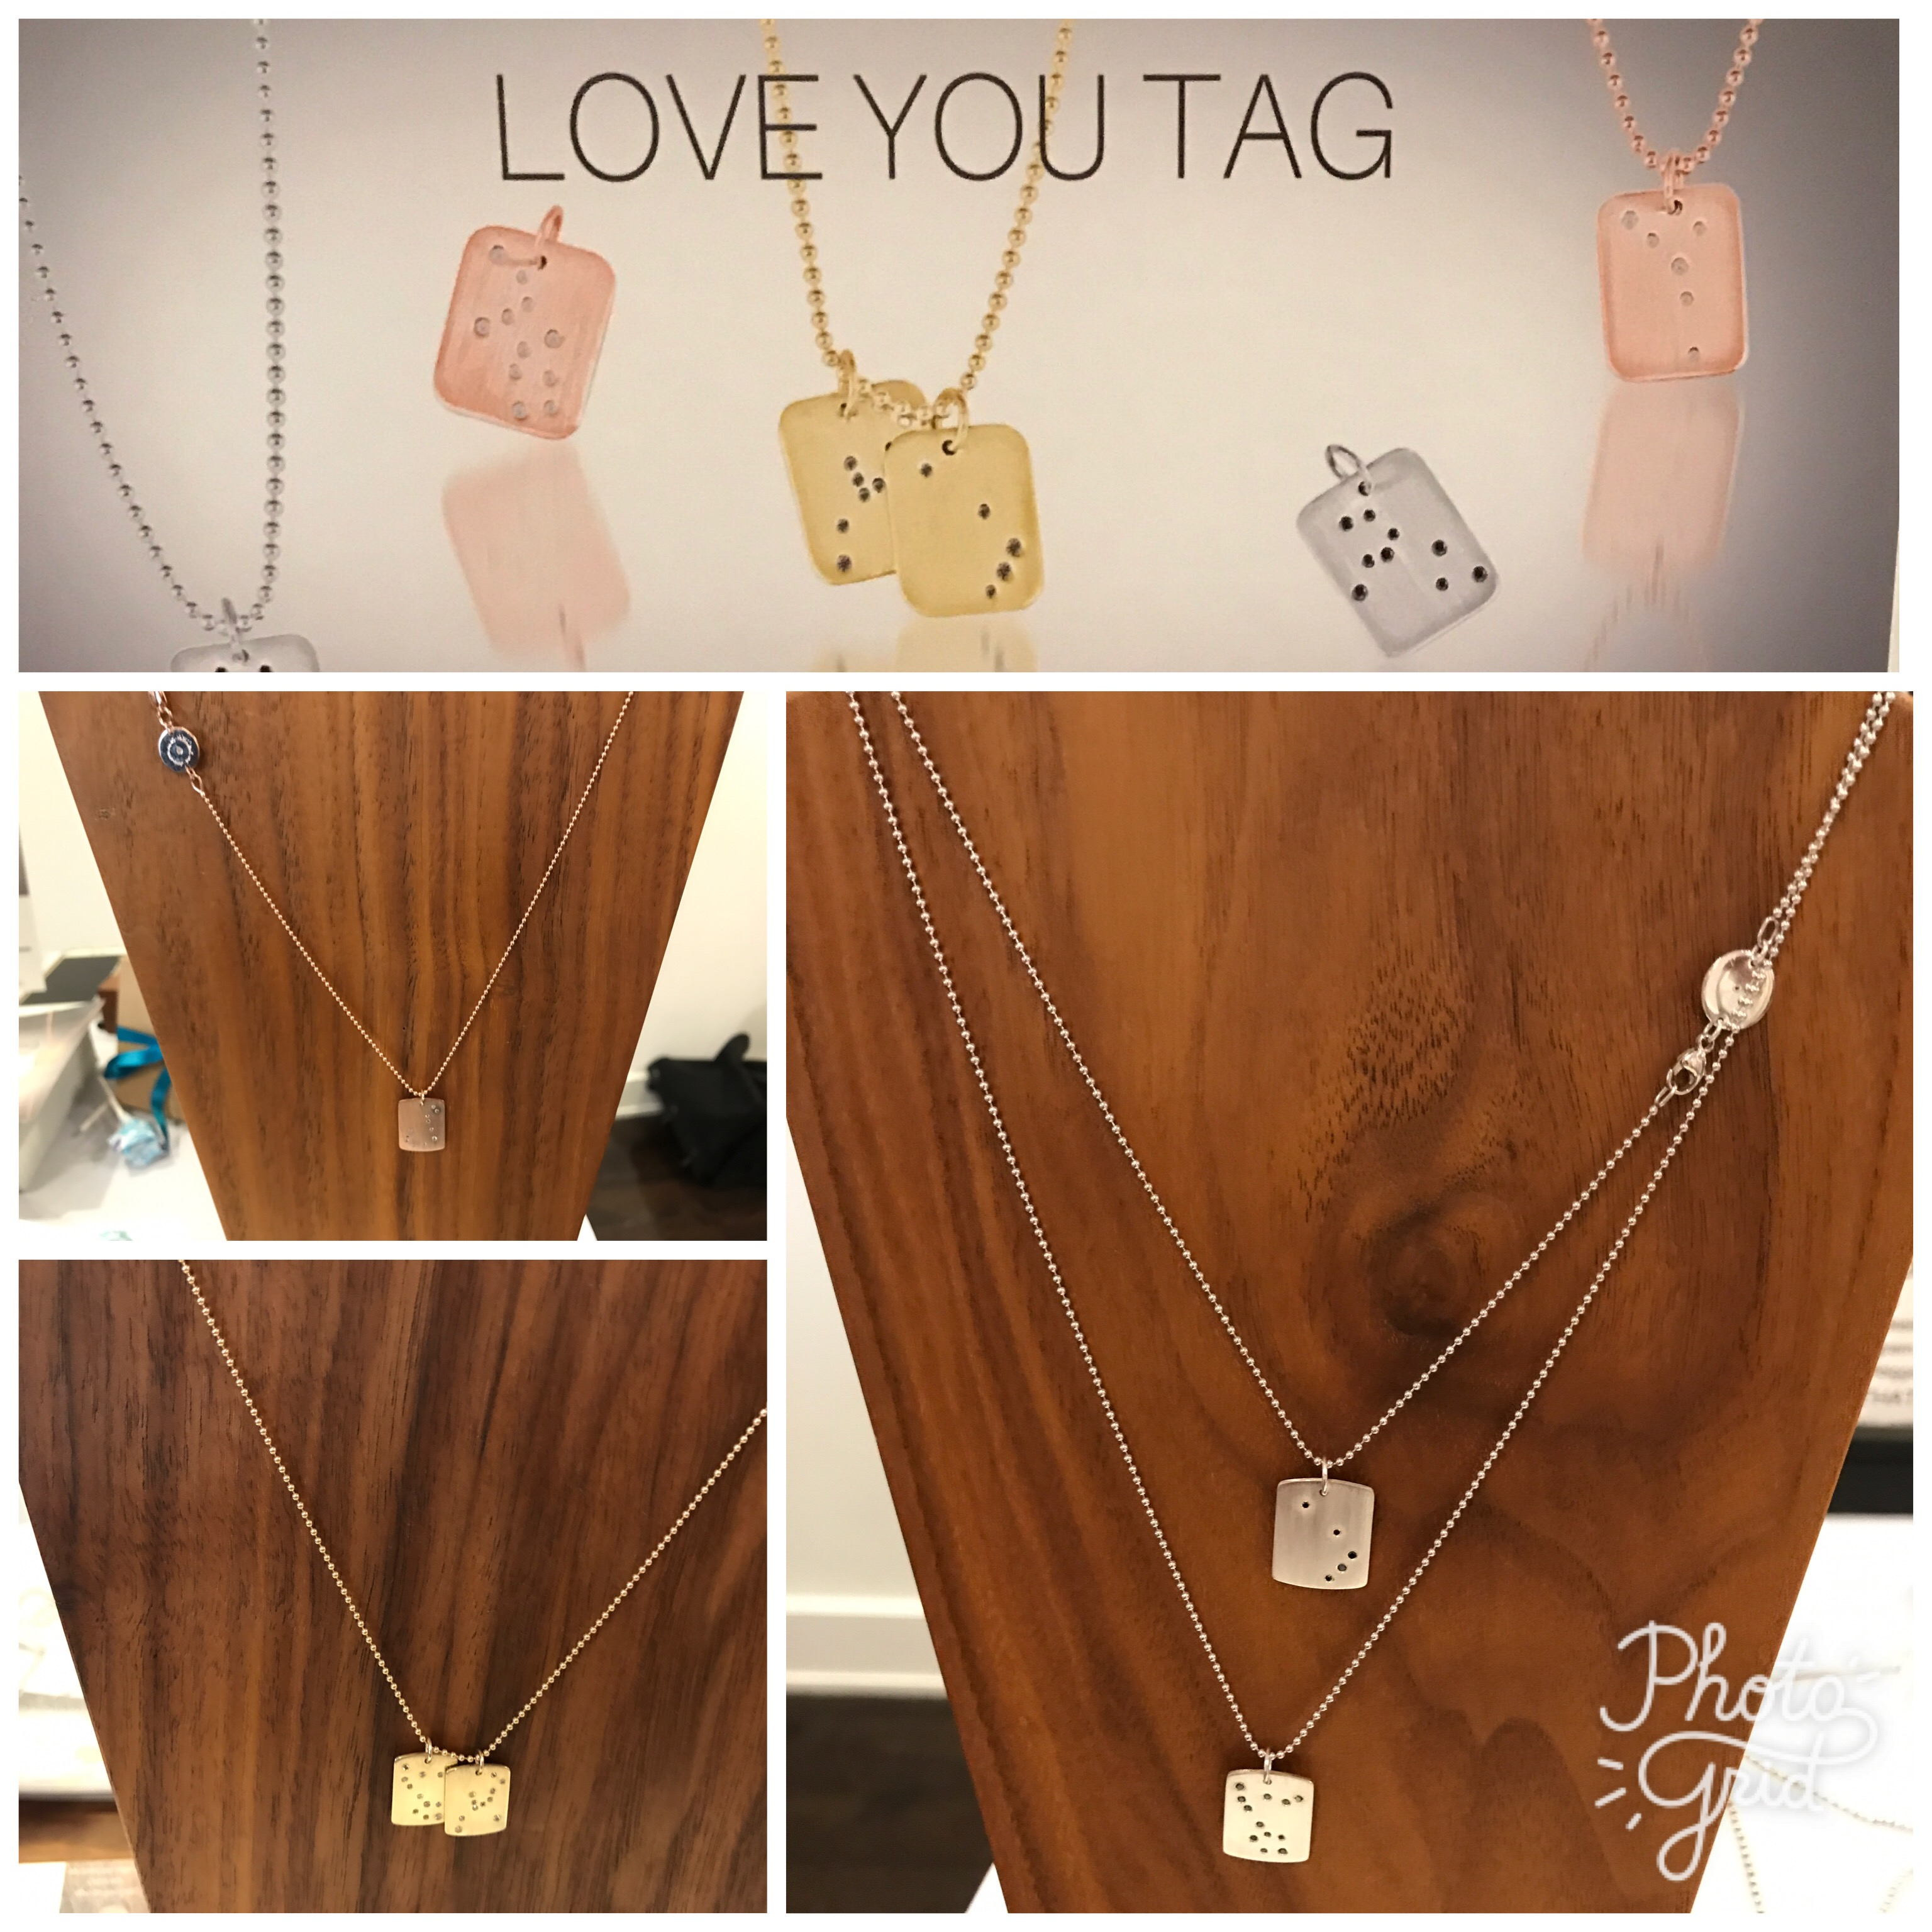 Love you Tag from Eatmetal at The Biggest Baby Shower